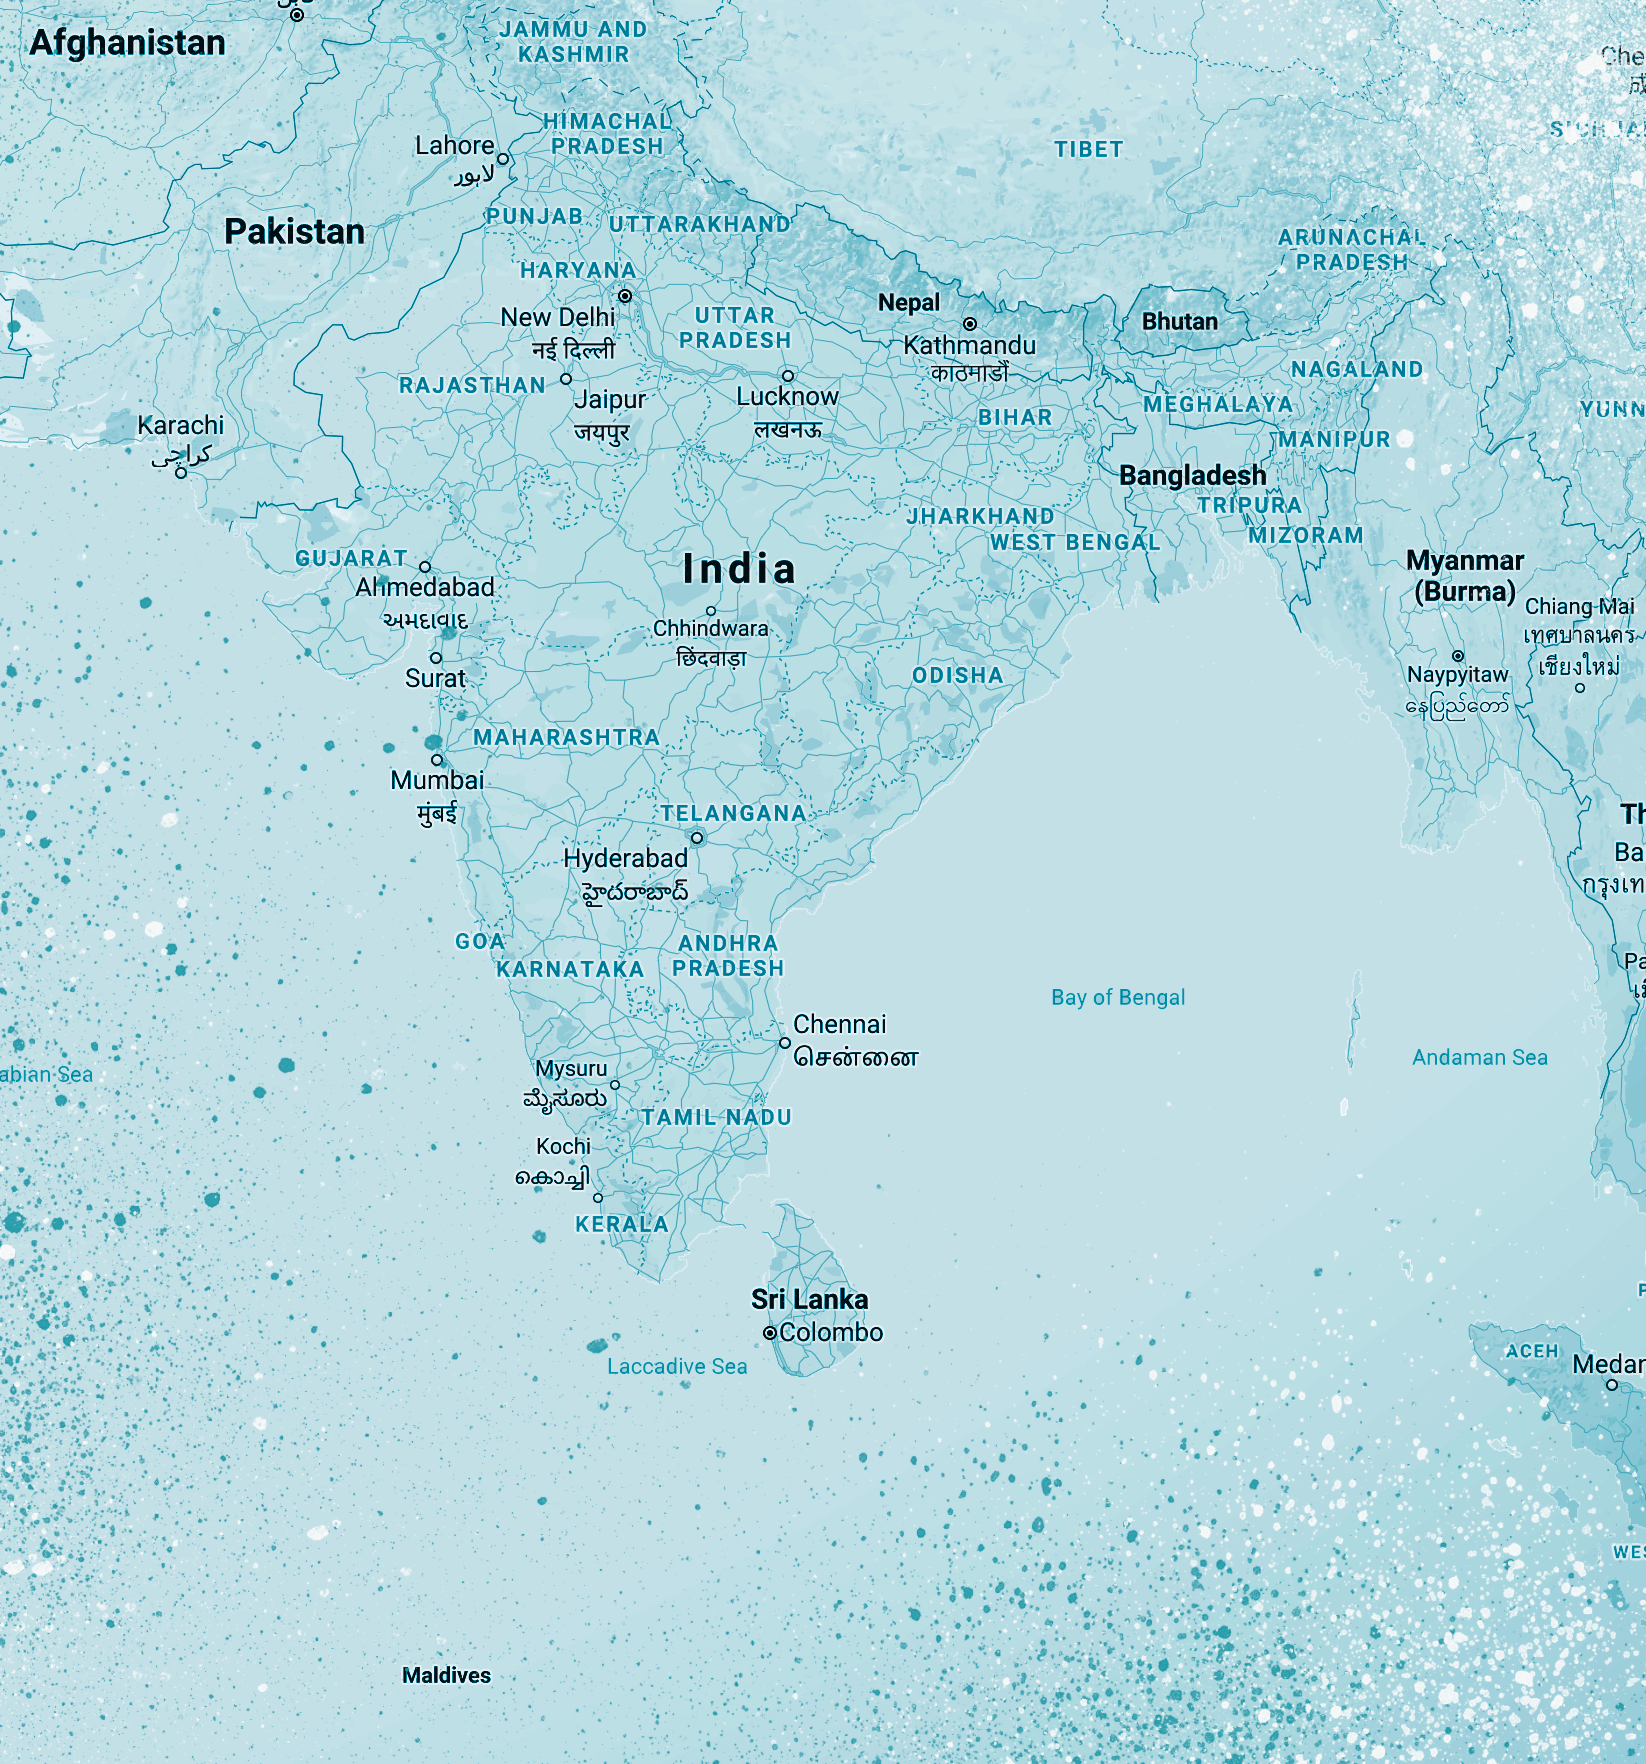 South Asia Map (generated by Google Maps)